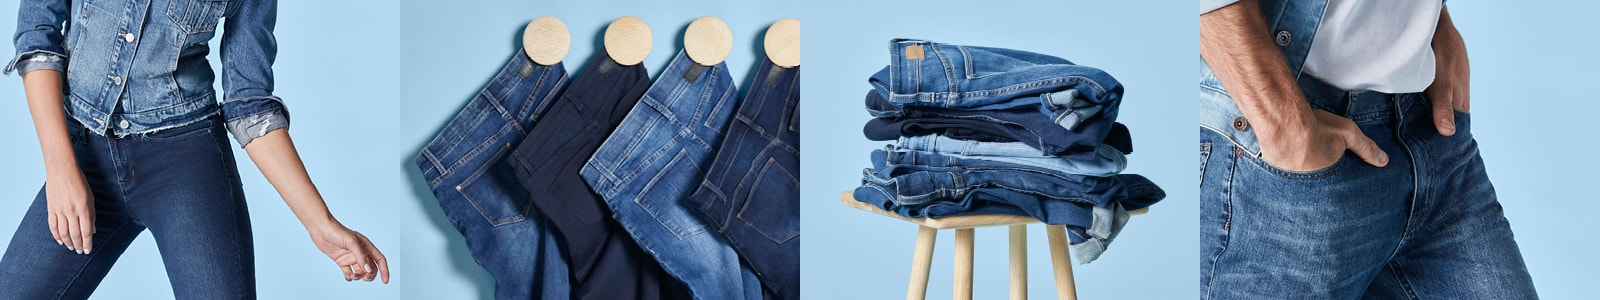 Jeanswest's banner